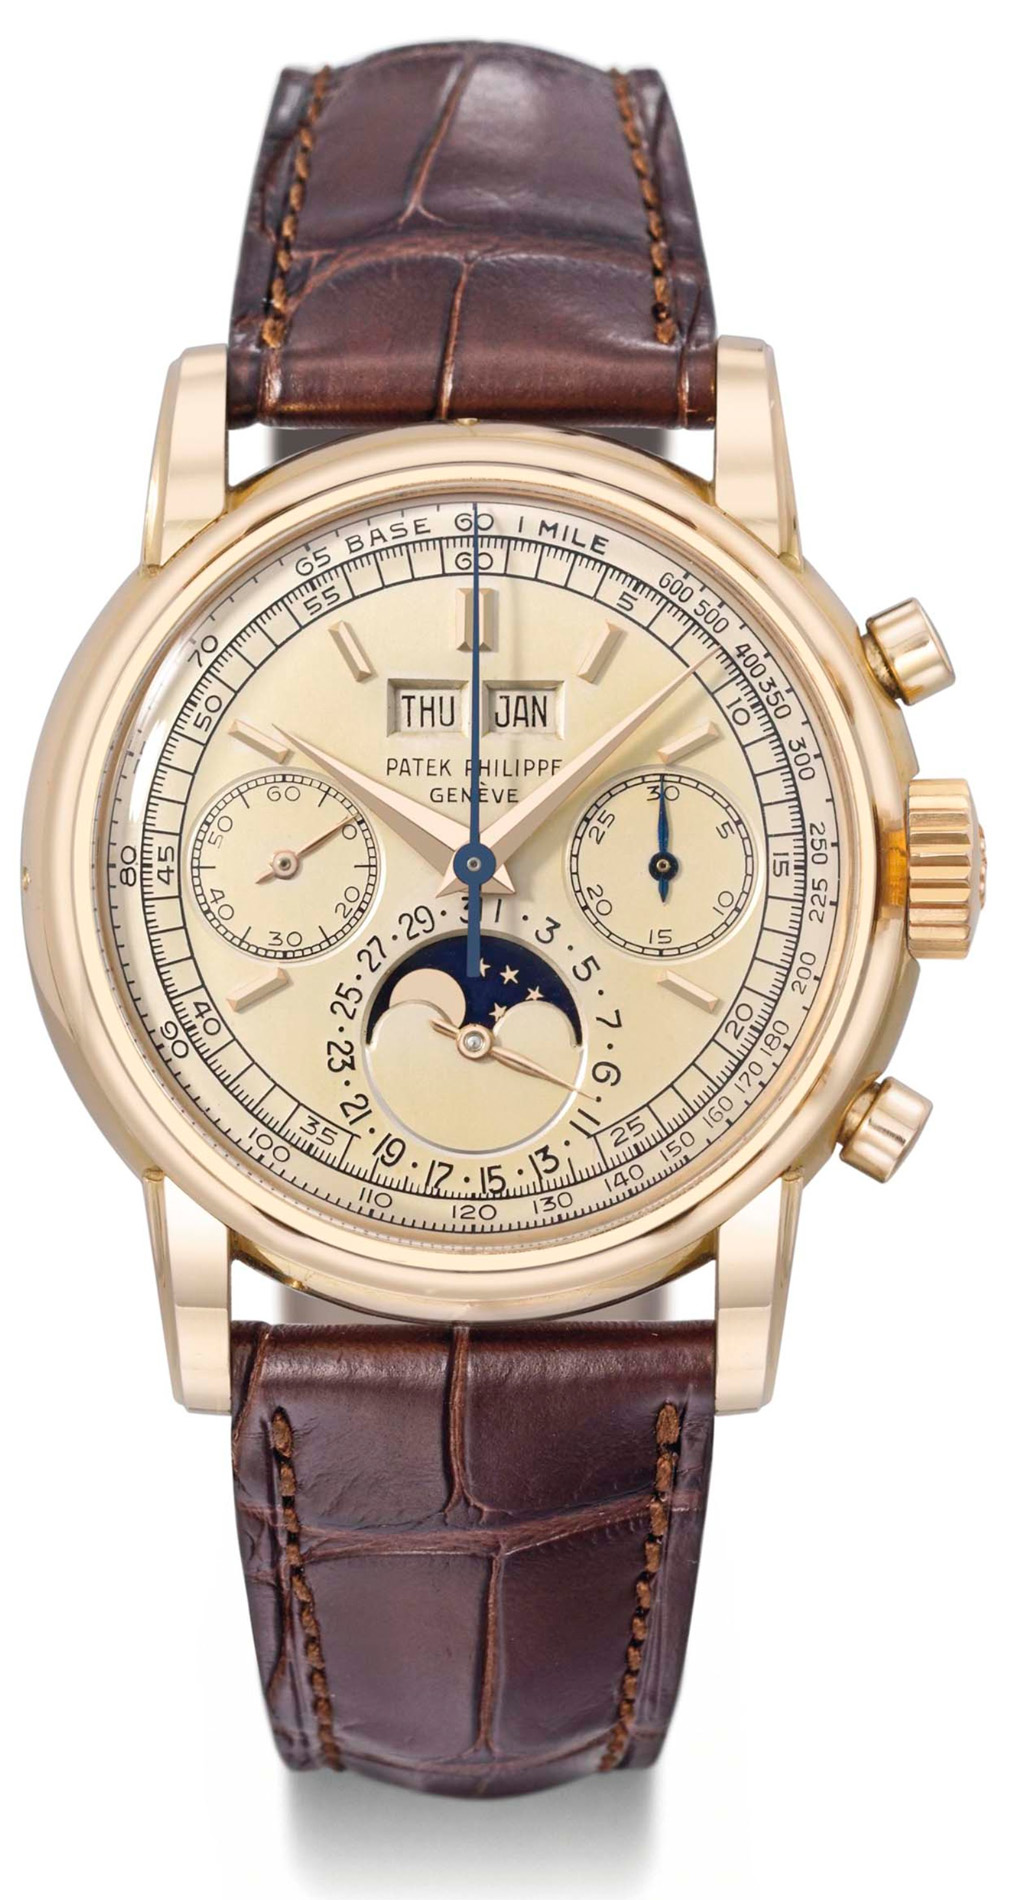 Patek Philippe Ref. 2499 from 1957